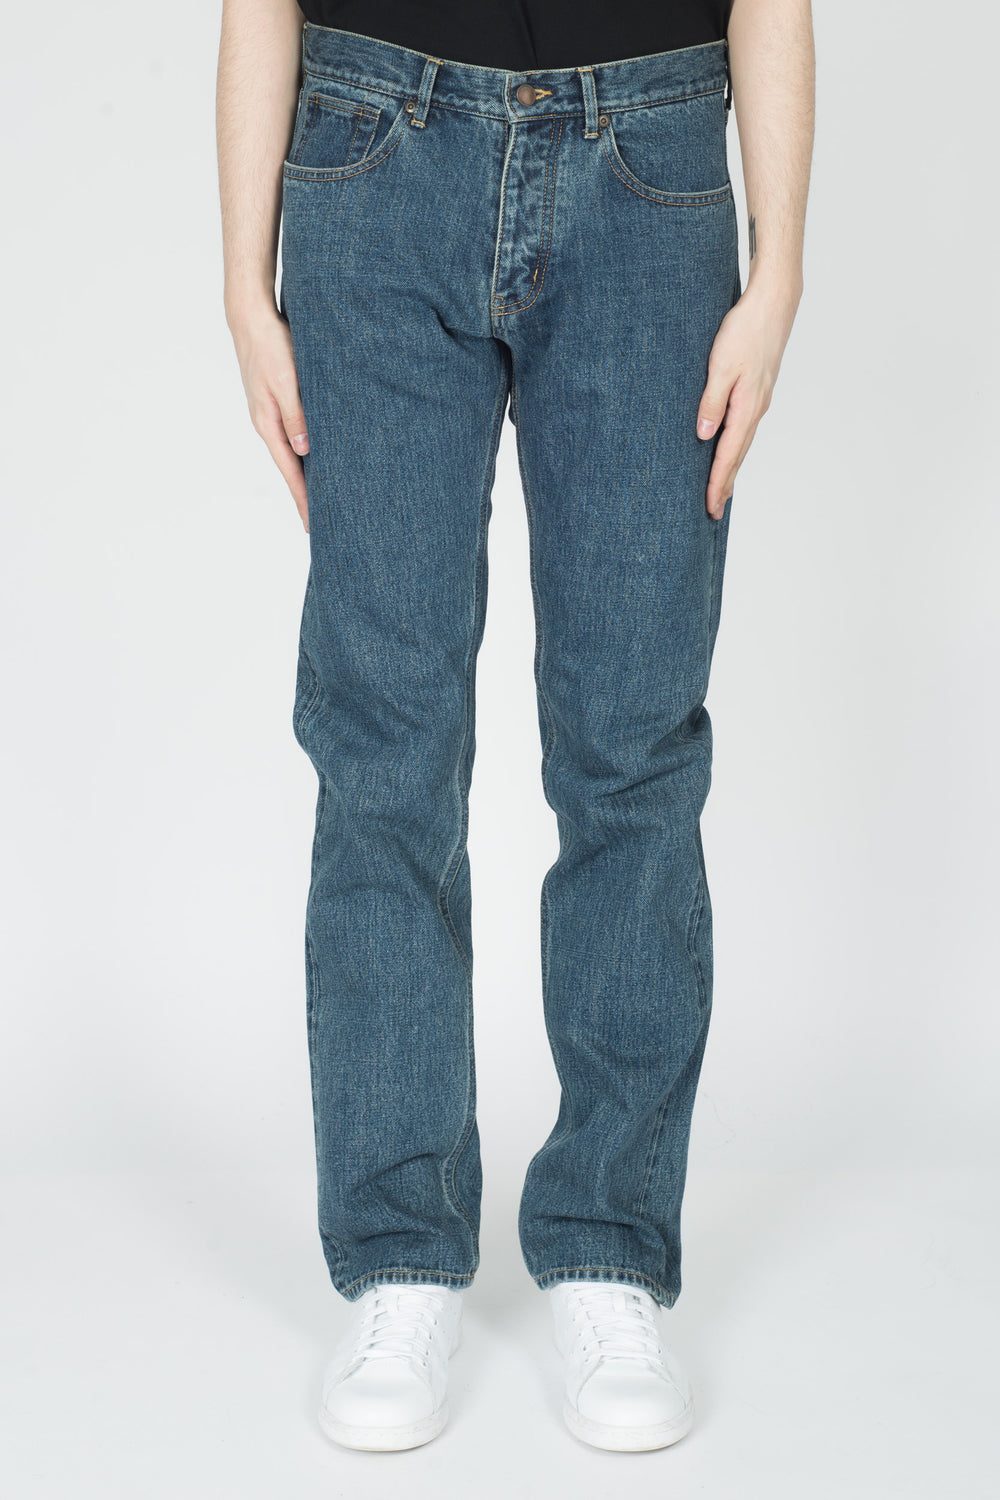 CHILDS Selvage Denim Pant In Indigo Wash